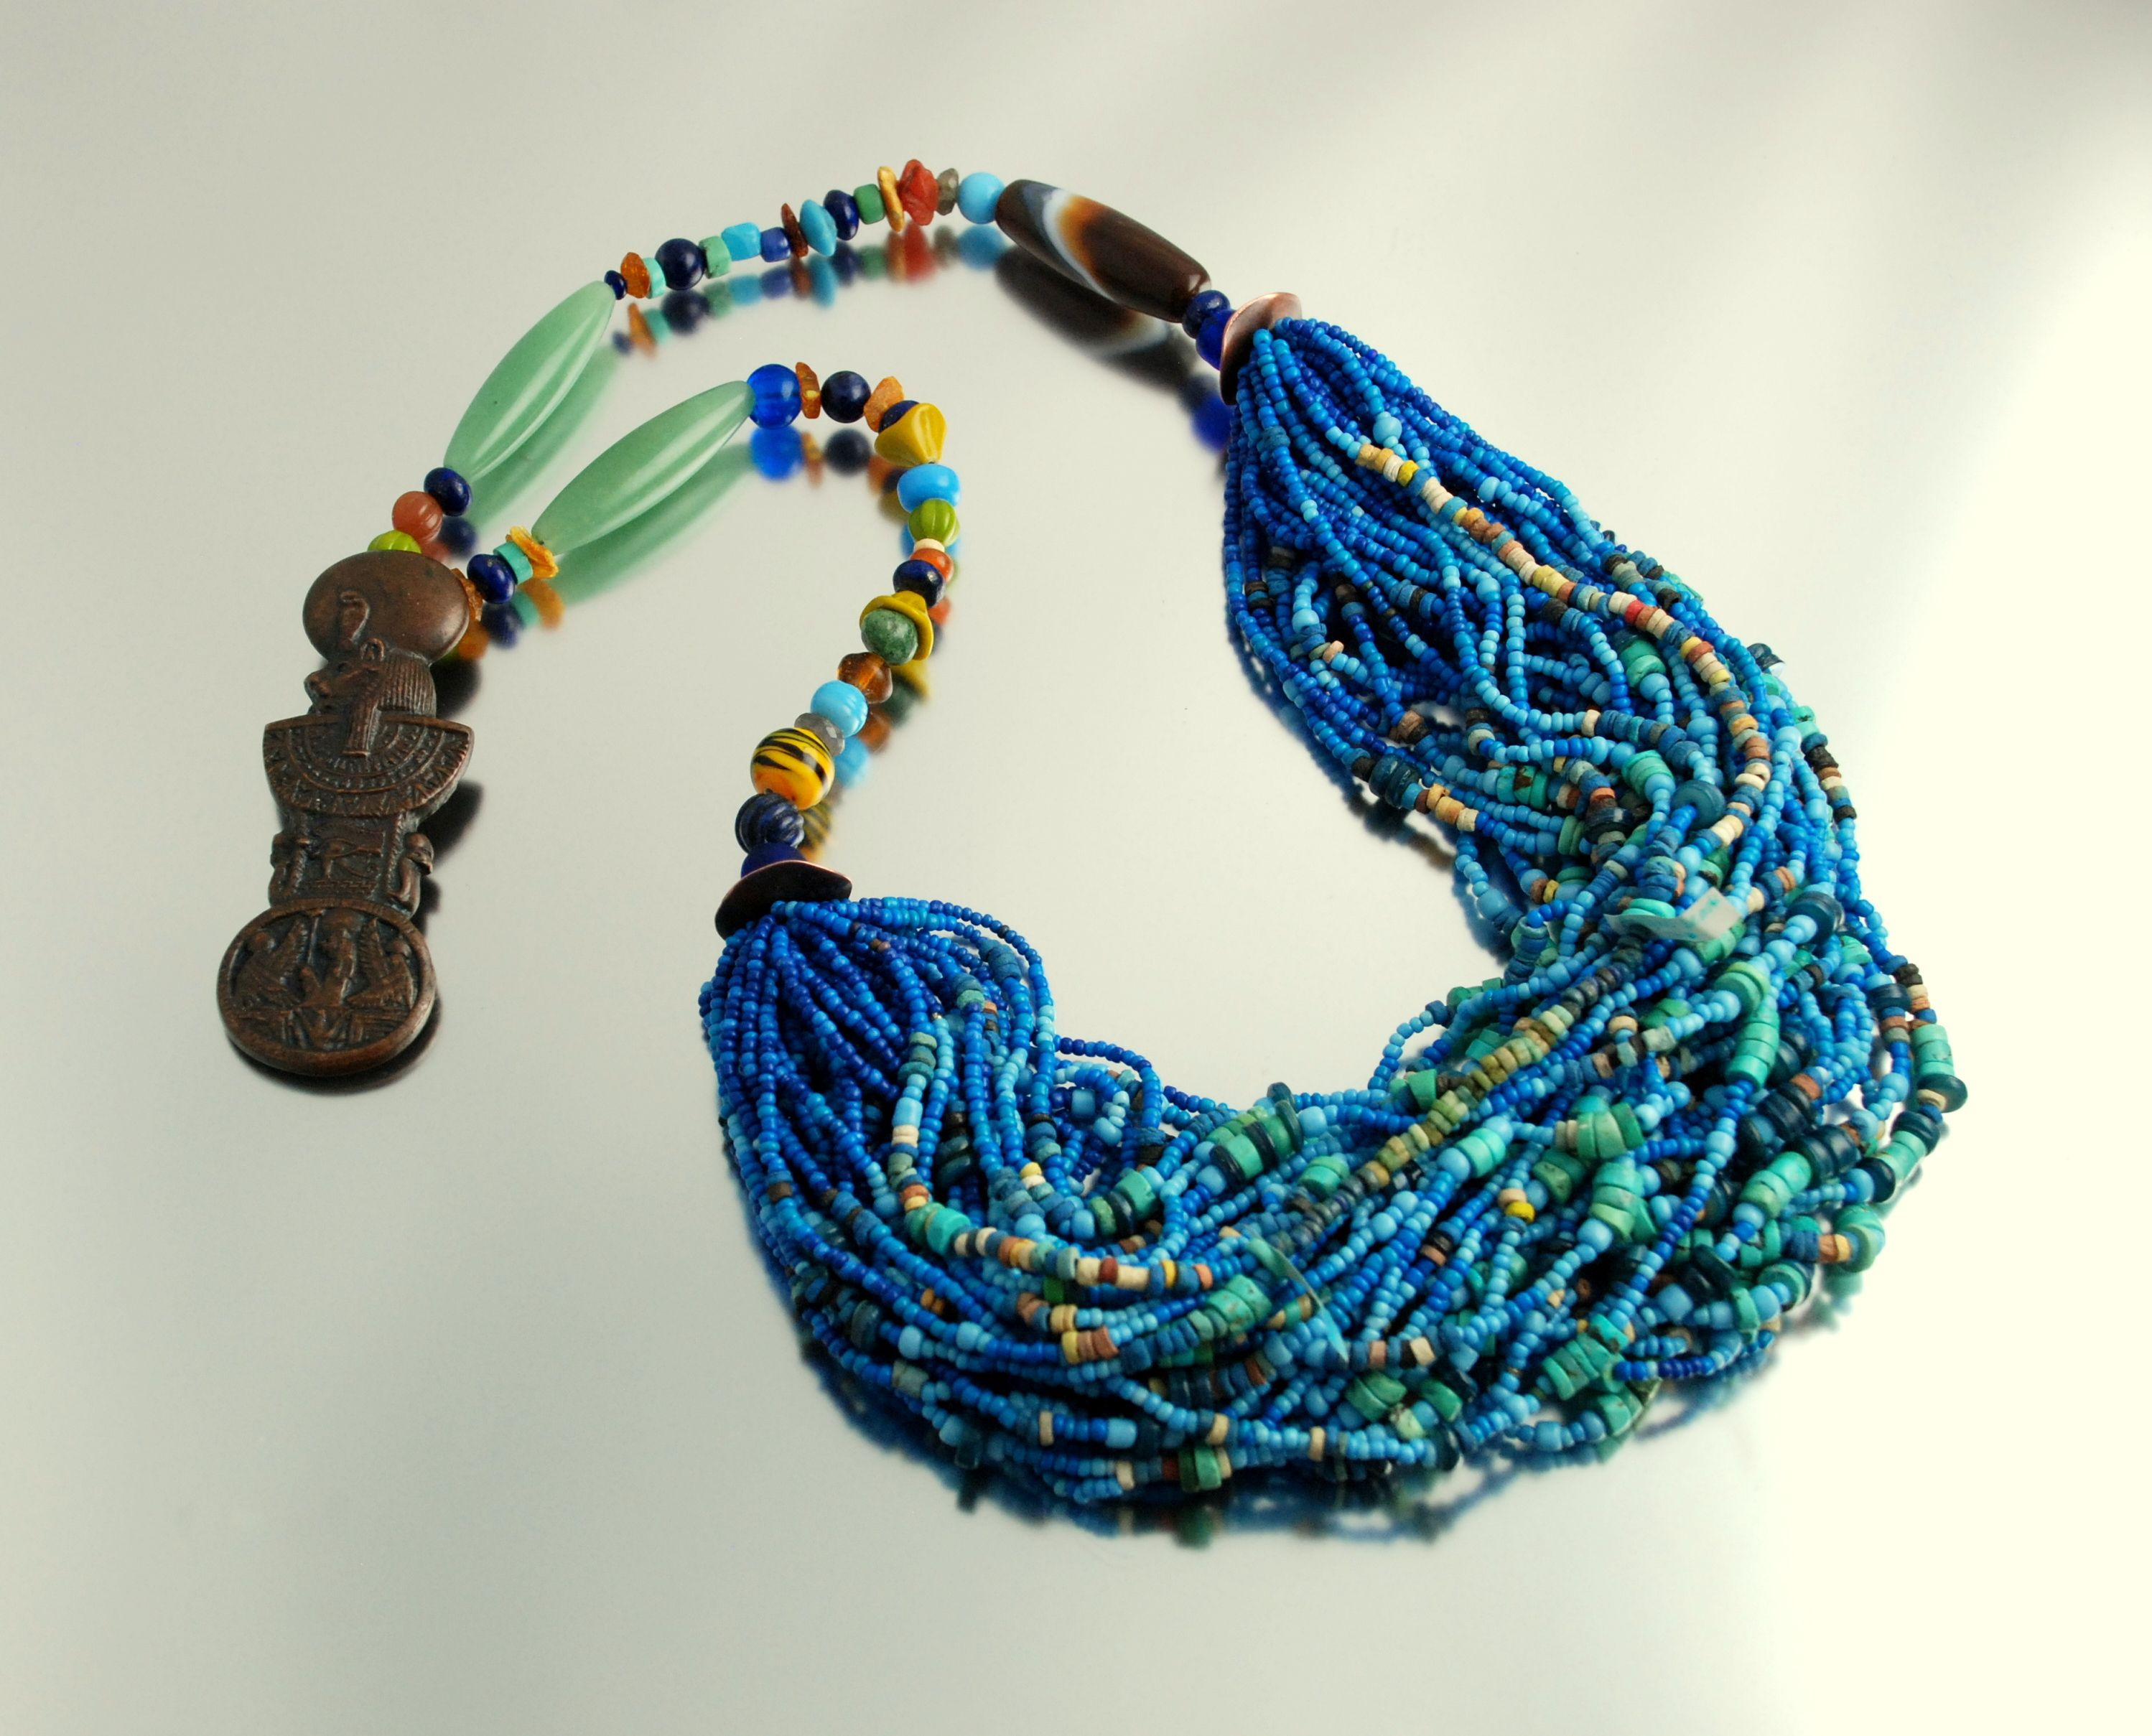 Egyptian Menat necklace - replica of an ancient ceremonial